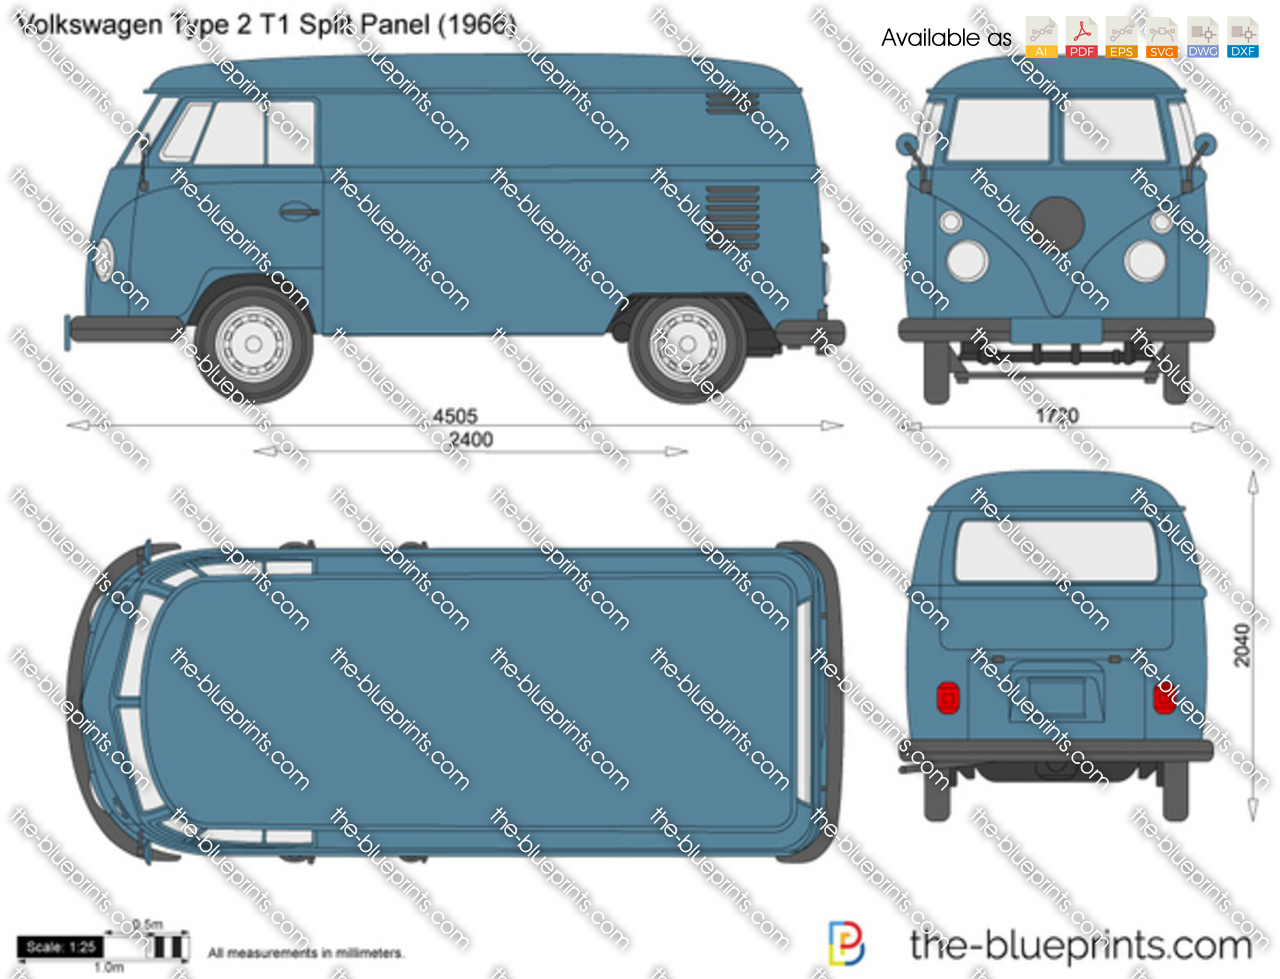 1954 Volkswagen Type 2 T1 Split Panel